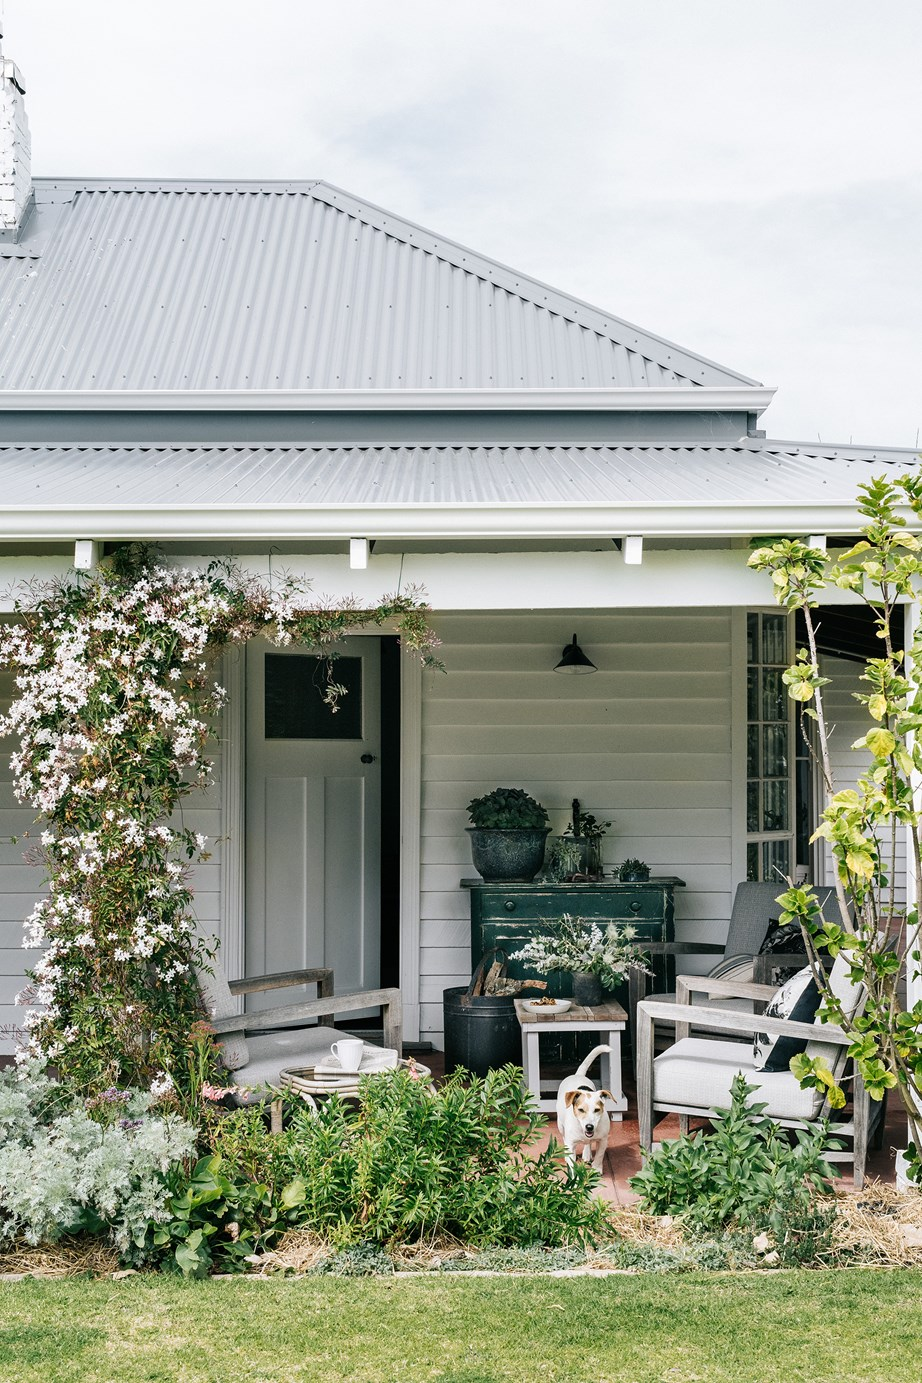 """We call these our gin and tonic chairs,"" says homeowner Fliss of this sunny spot on the verandah of her [coastal farmhouse](https://www.homestolove.com.au/coastal-farm-geographe-bay-20981